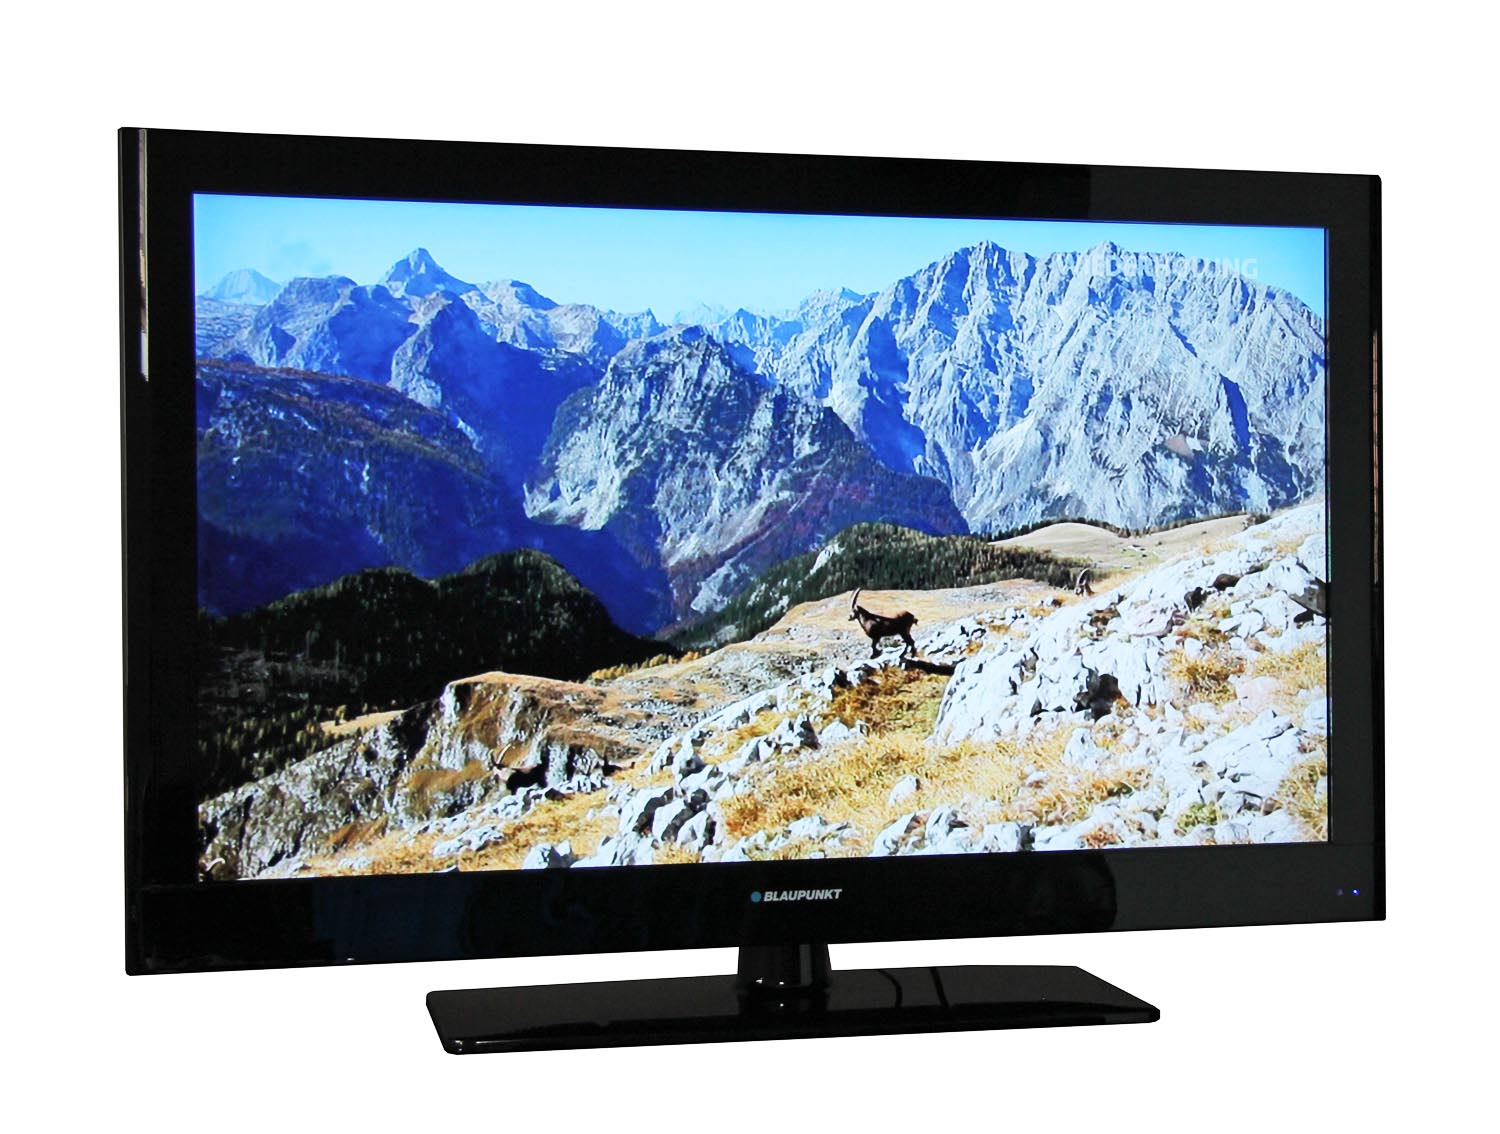 blaupunkt b40p74tfhd lcd fernseher 40 zoll 102cm full hd. Black Bedroom Furniture Sets. Home Design Ideas